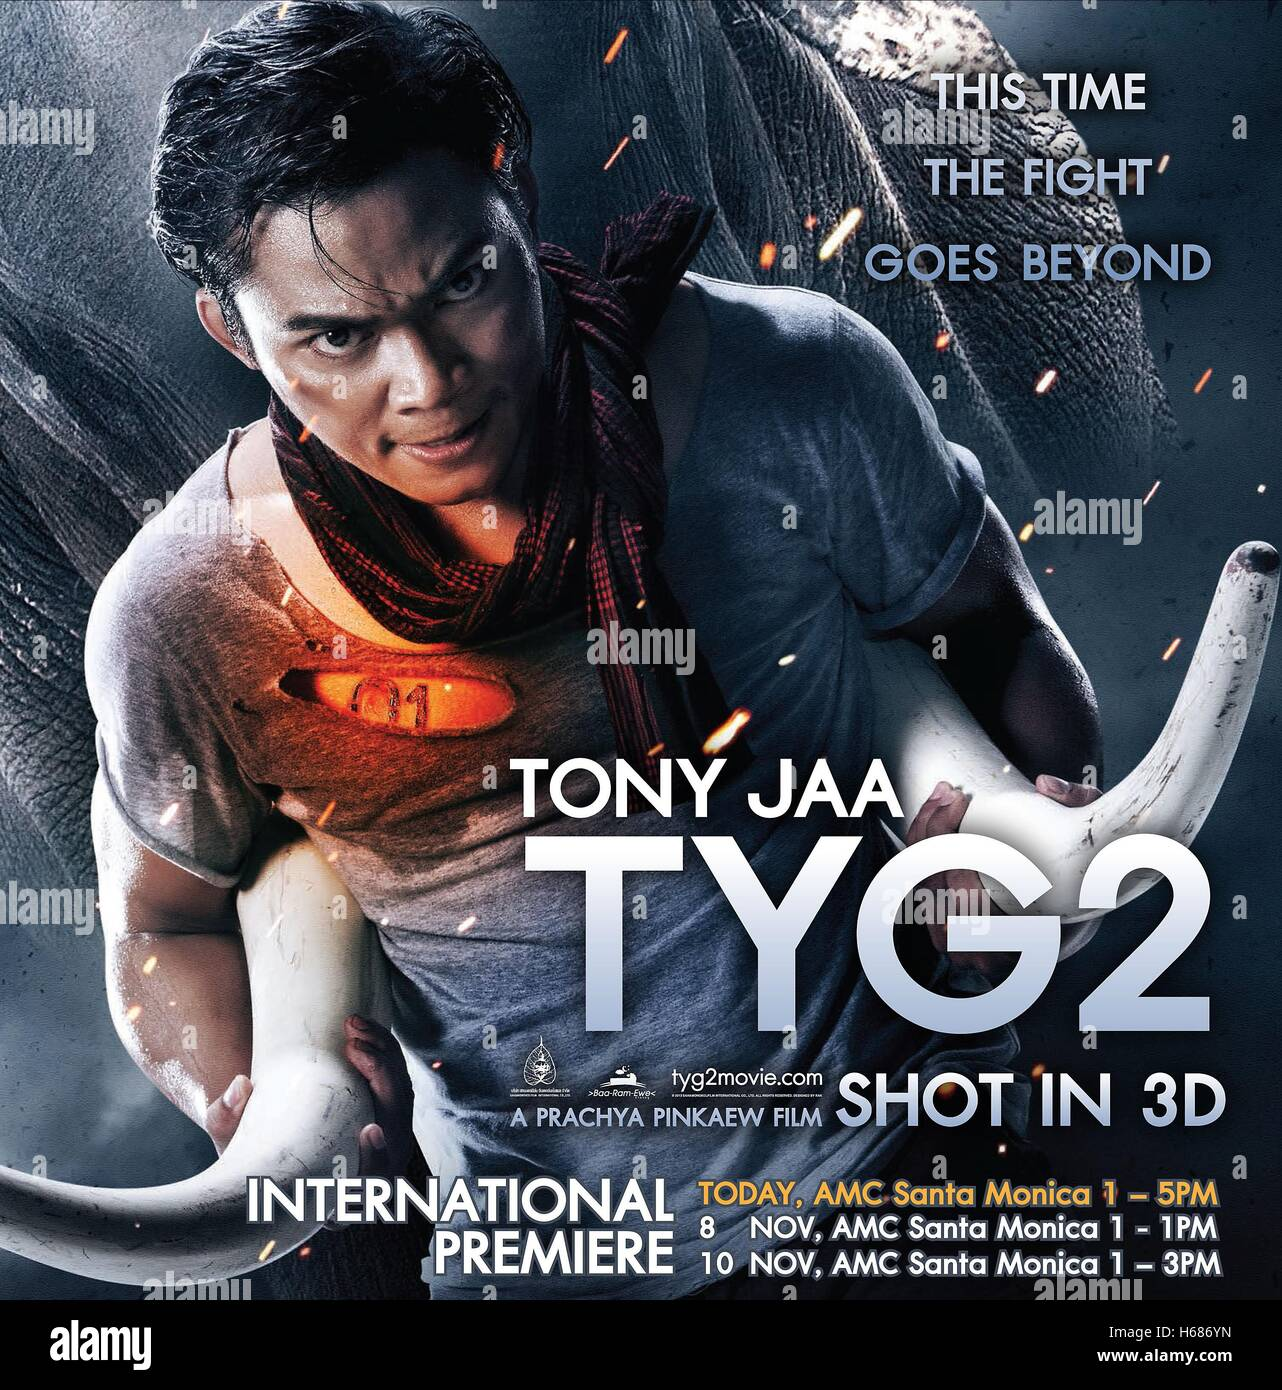 Jaa Awesome tony jaa poster warrior king 2; the protector 2 ; tom yum goong 2